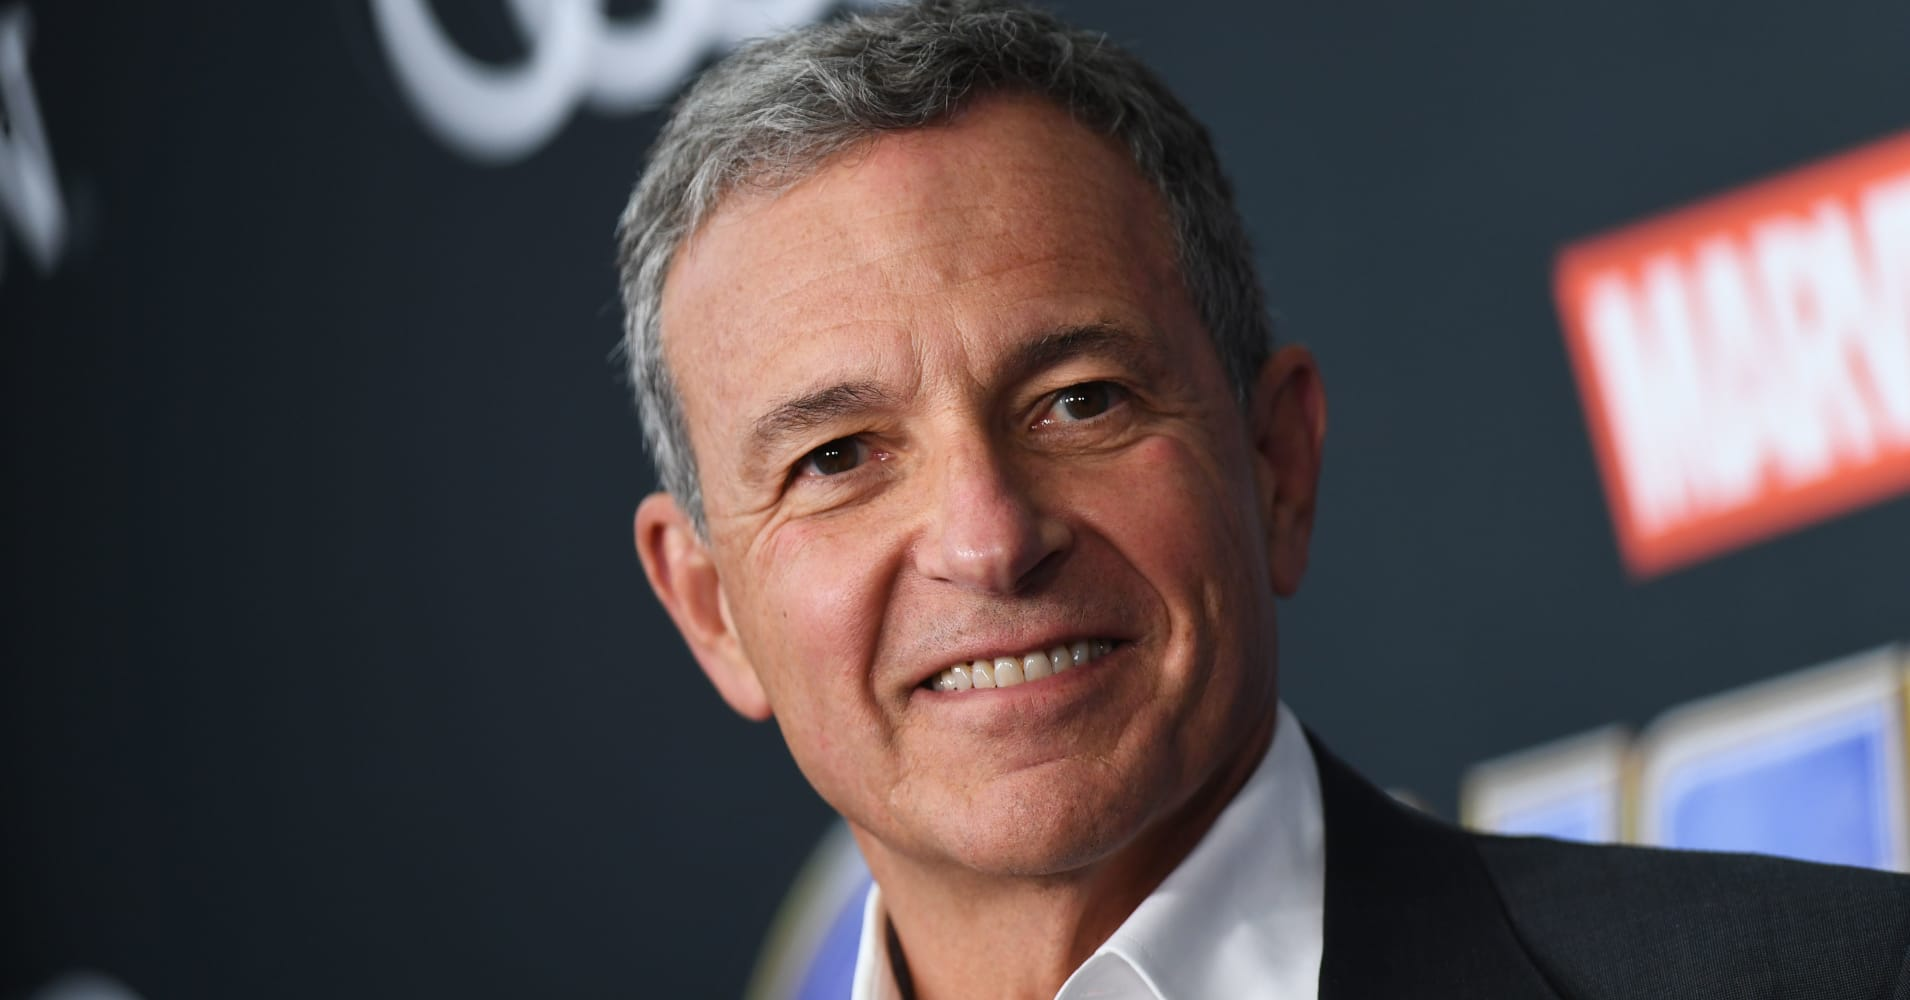 Disney CEO Bob Iger earns 1,000 times as much as a typical employee